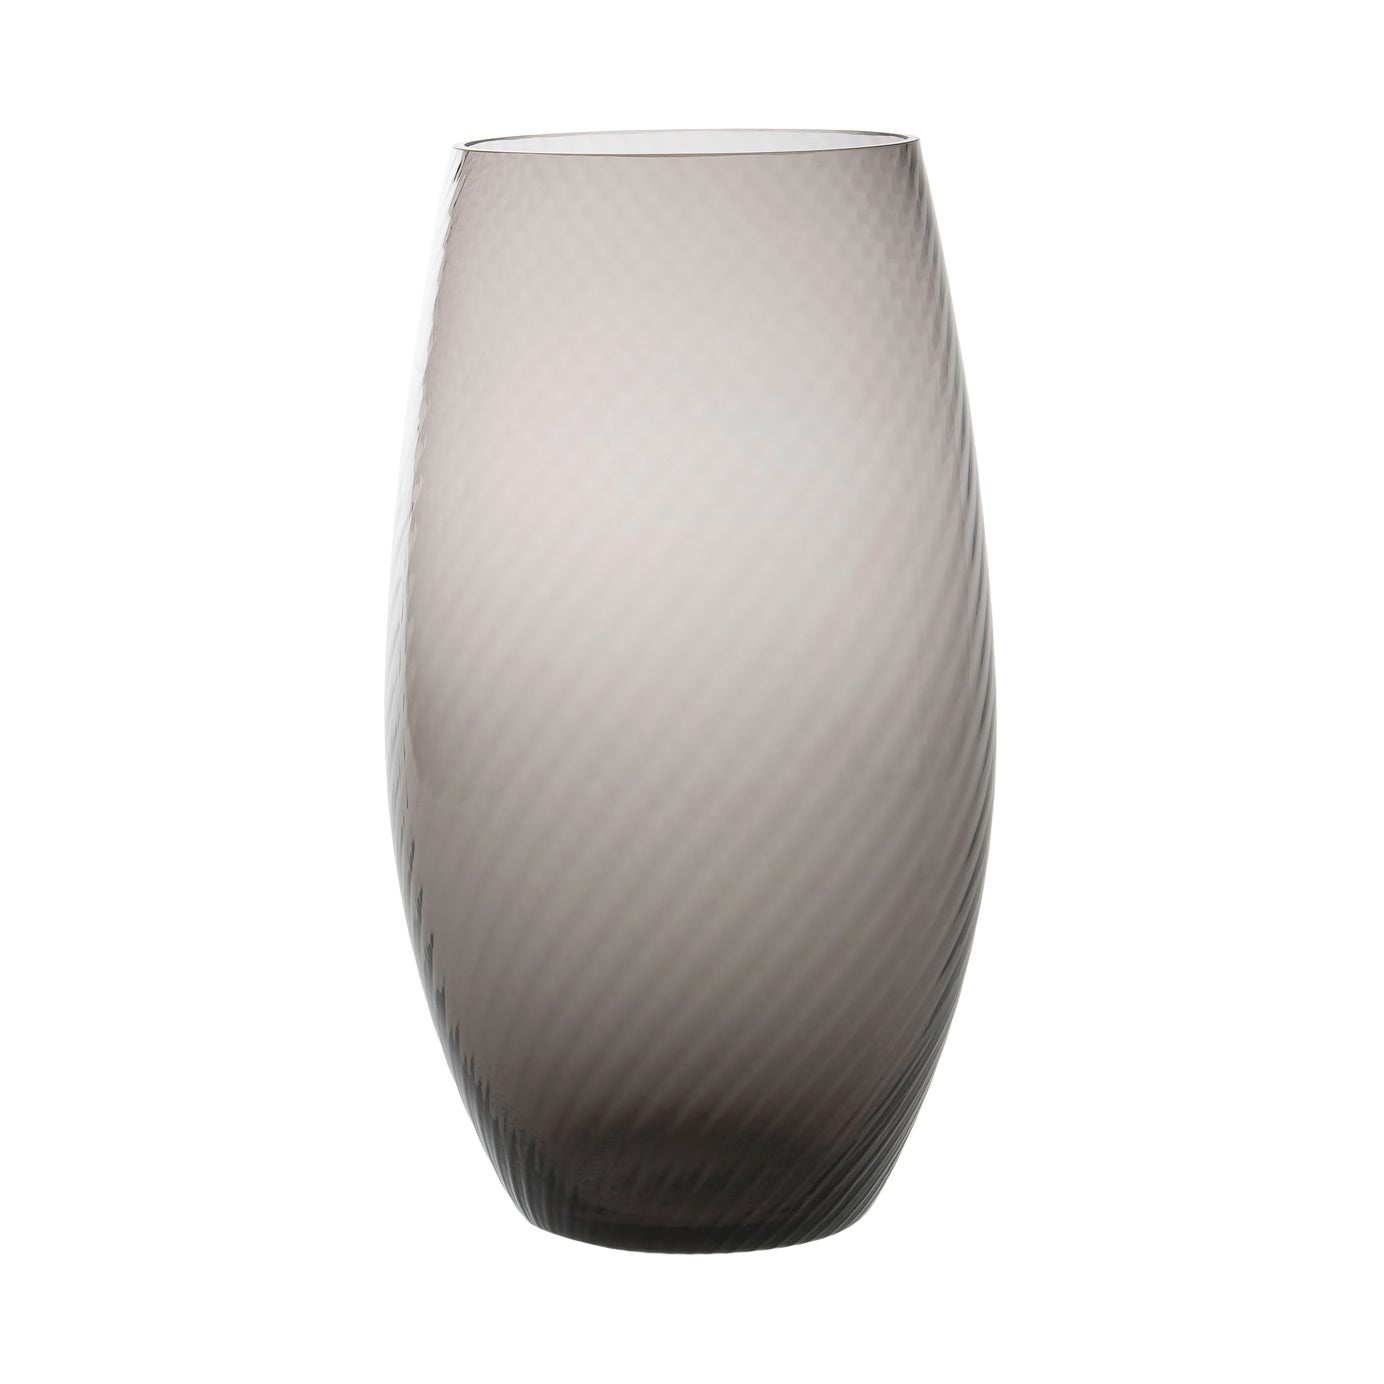 Vaso Ovale28, Vase Handcrafted Muranese Glass, Lead Twisted MUN by VG